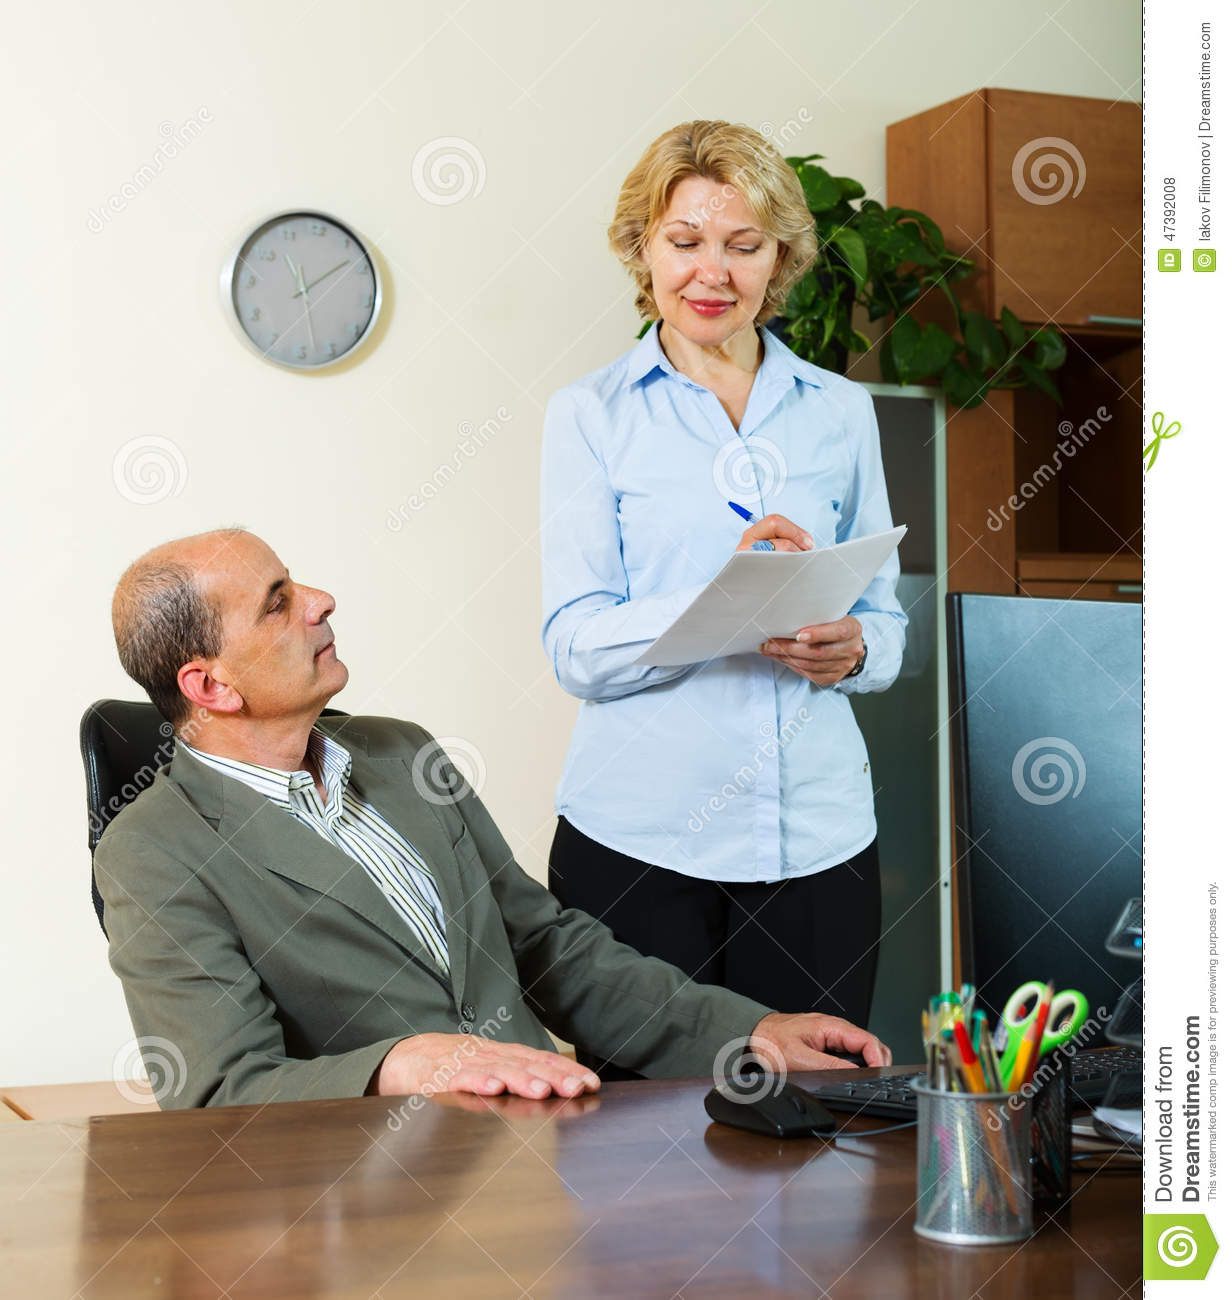 chief giving new task to mature secretary stock photo - image of